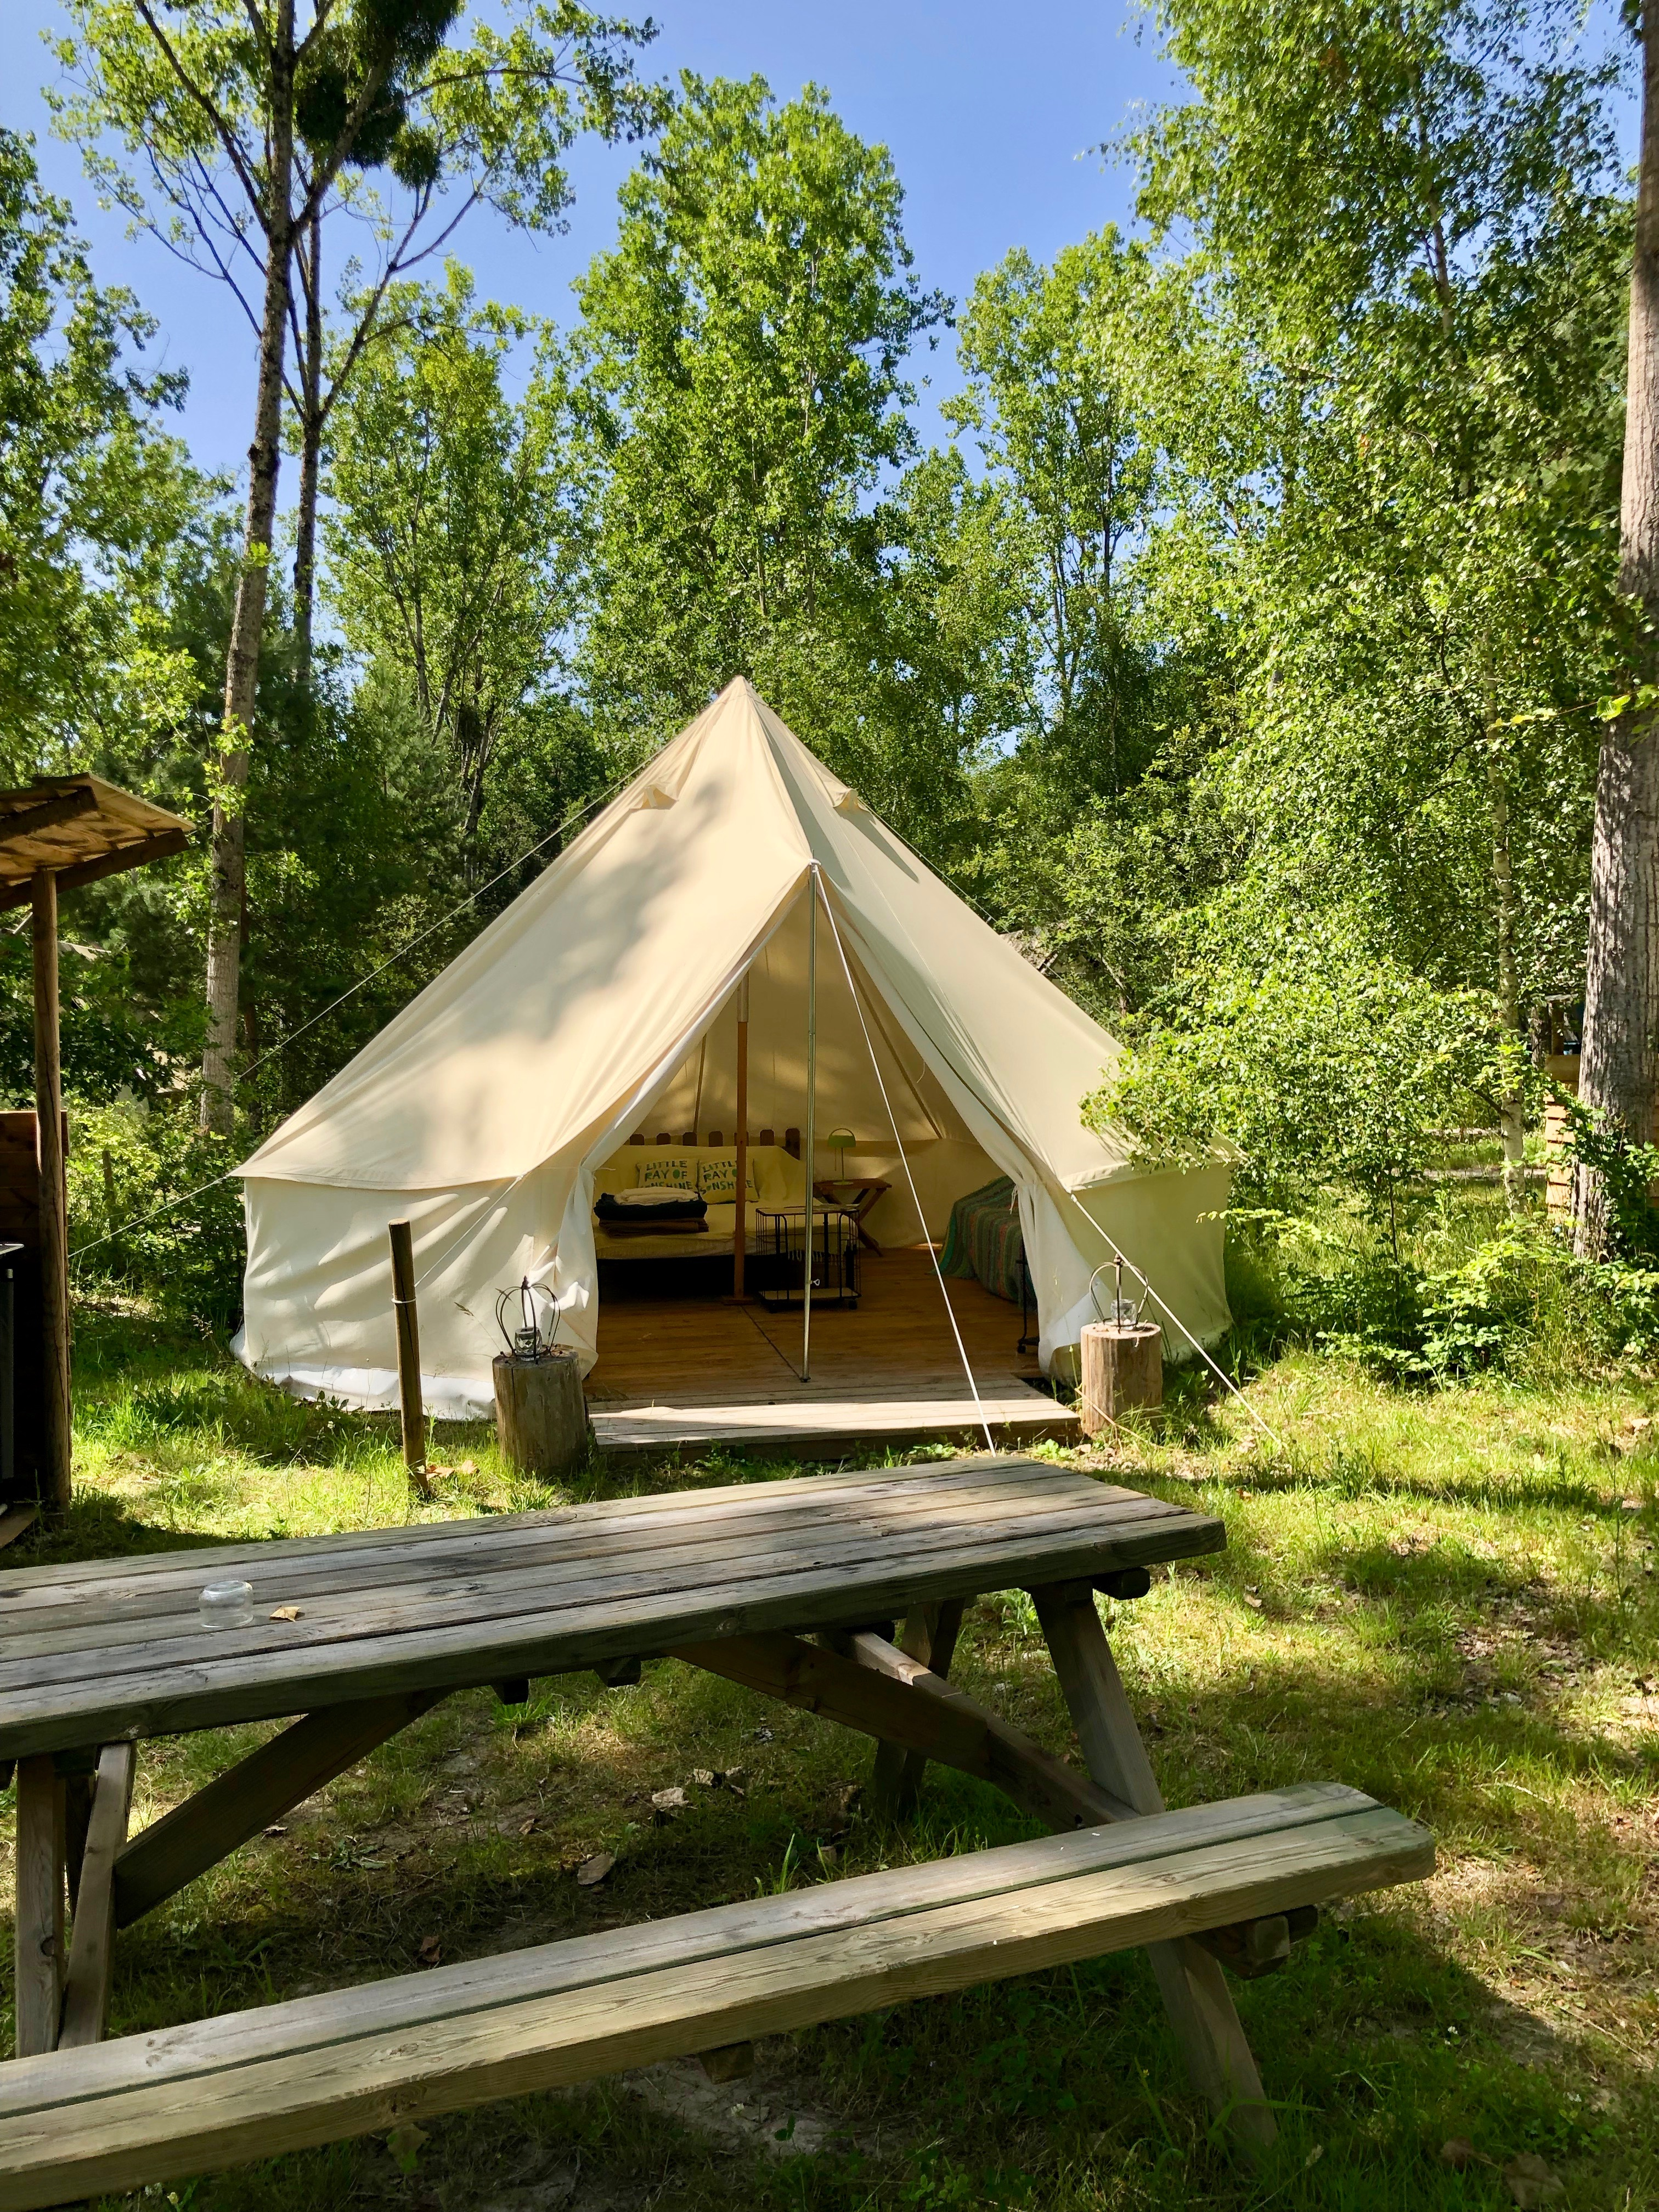 Val de Loire ; camping ; pitchup ; pitchup.com ; l'heureux hasard ; cheverny ; forêt ; glamping ; camping luxe ; âne ; éco-camping ; yourte